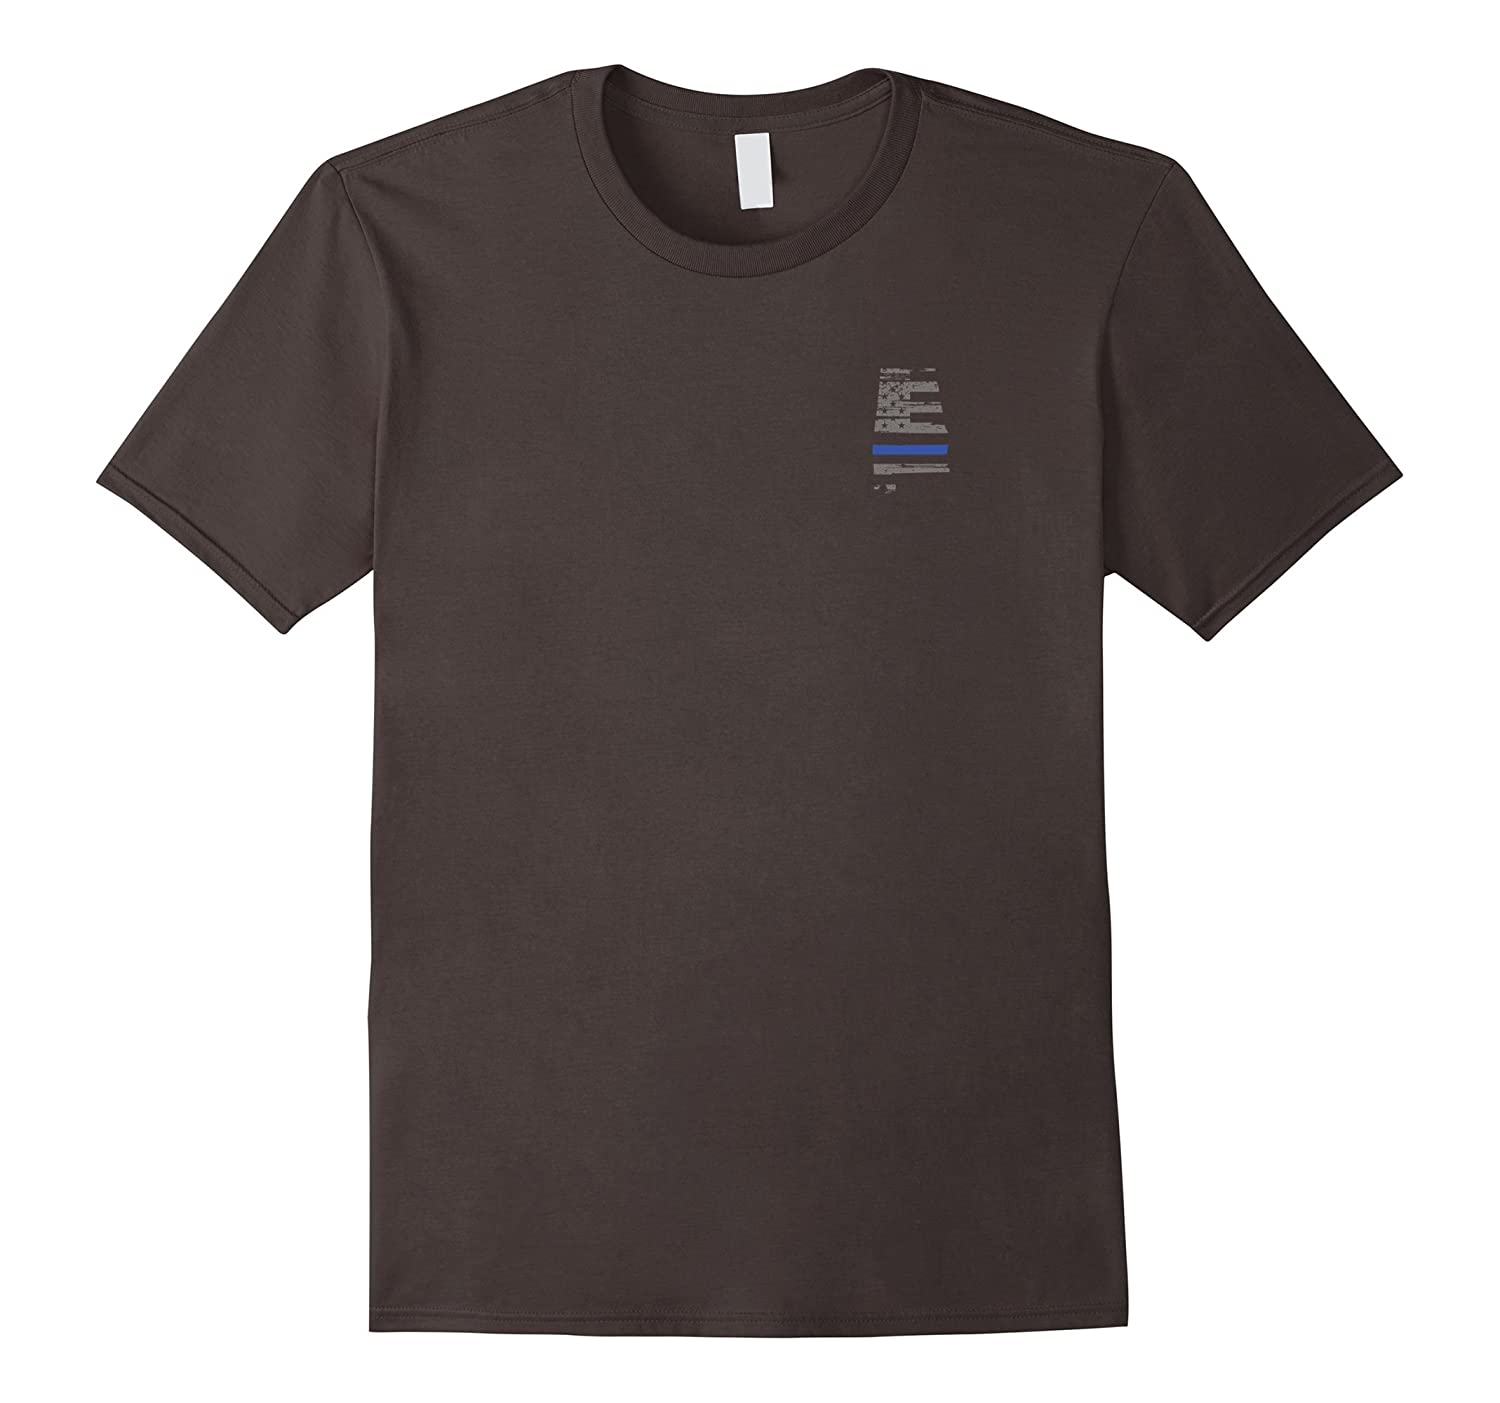 Alabama Police Law Enforcement Thin Blue Line Shirt-RT